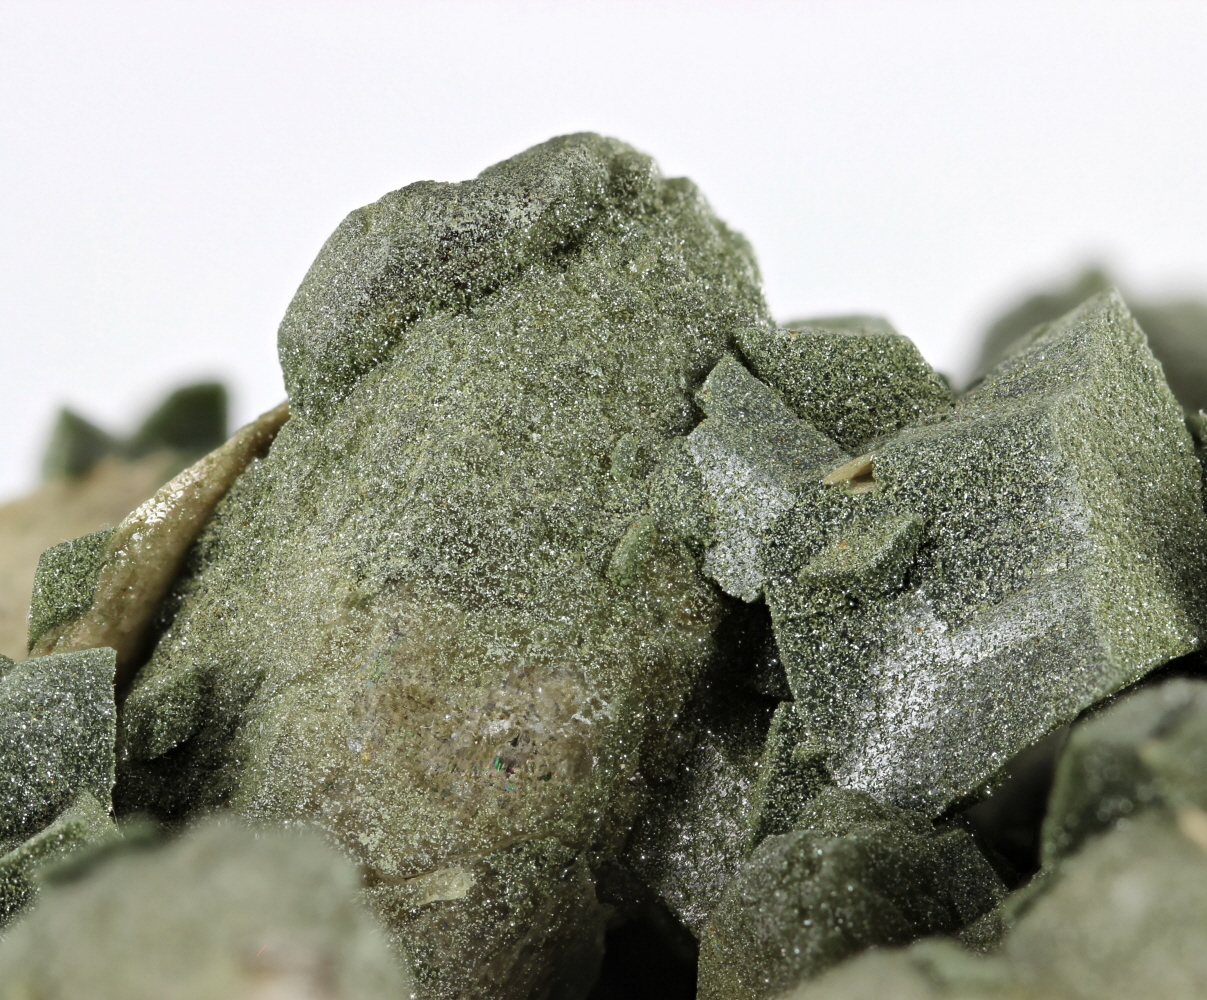 Titanite With Quartz Adularia & Chlorite